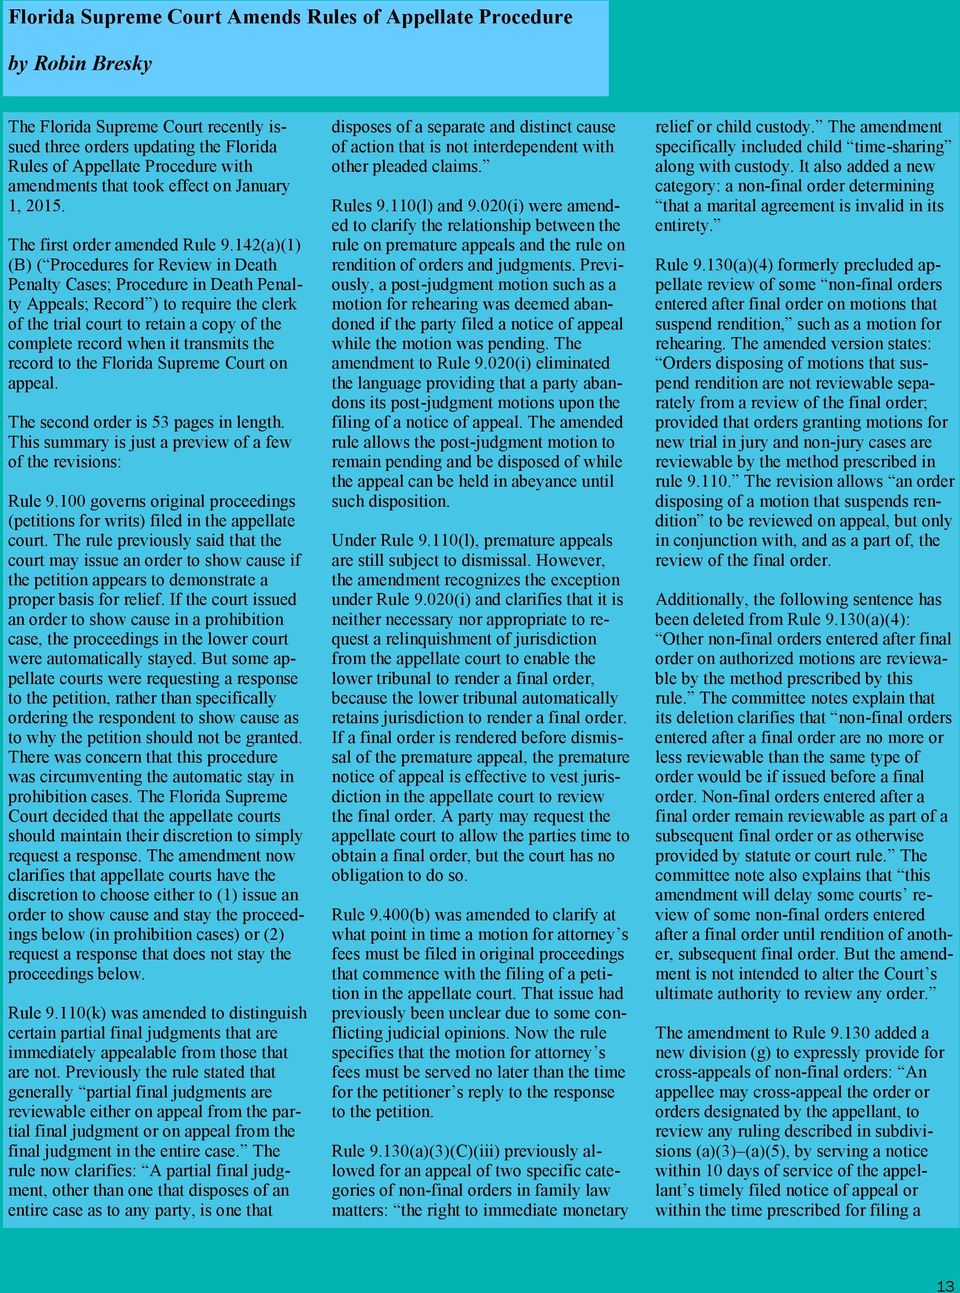 142(a)(1) (B) ( Procedures for Review in Death Penalty Cases; Procedure in Death Penalty Appeals; Record ) to require the clerk of the trial court to retain a copy of the complete record when it